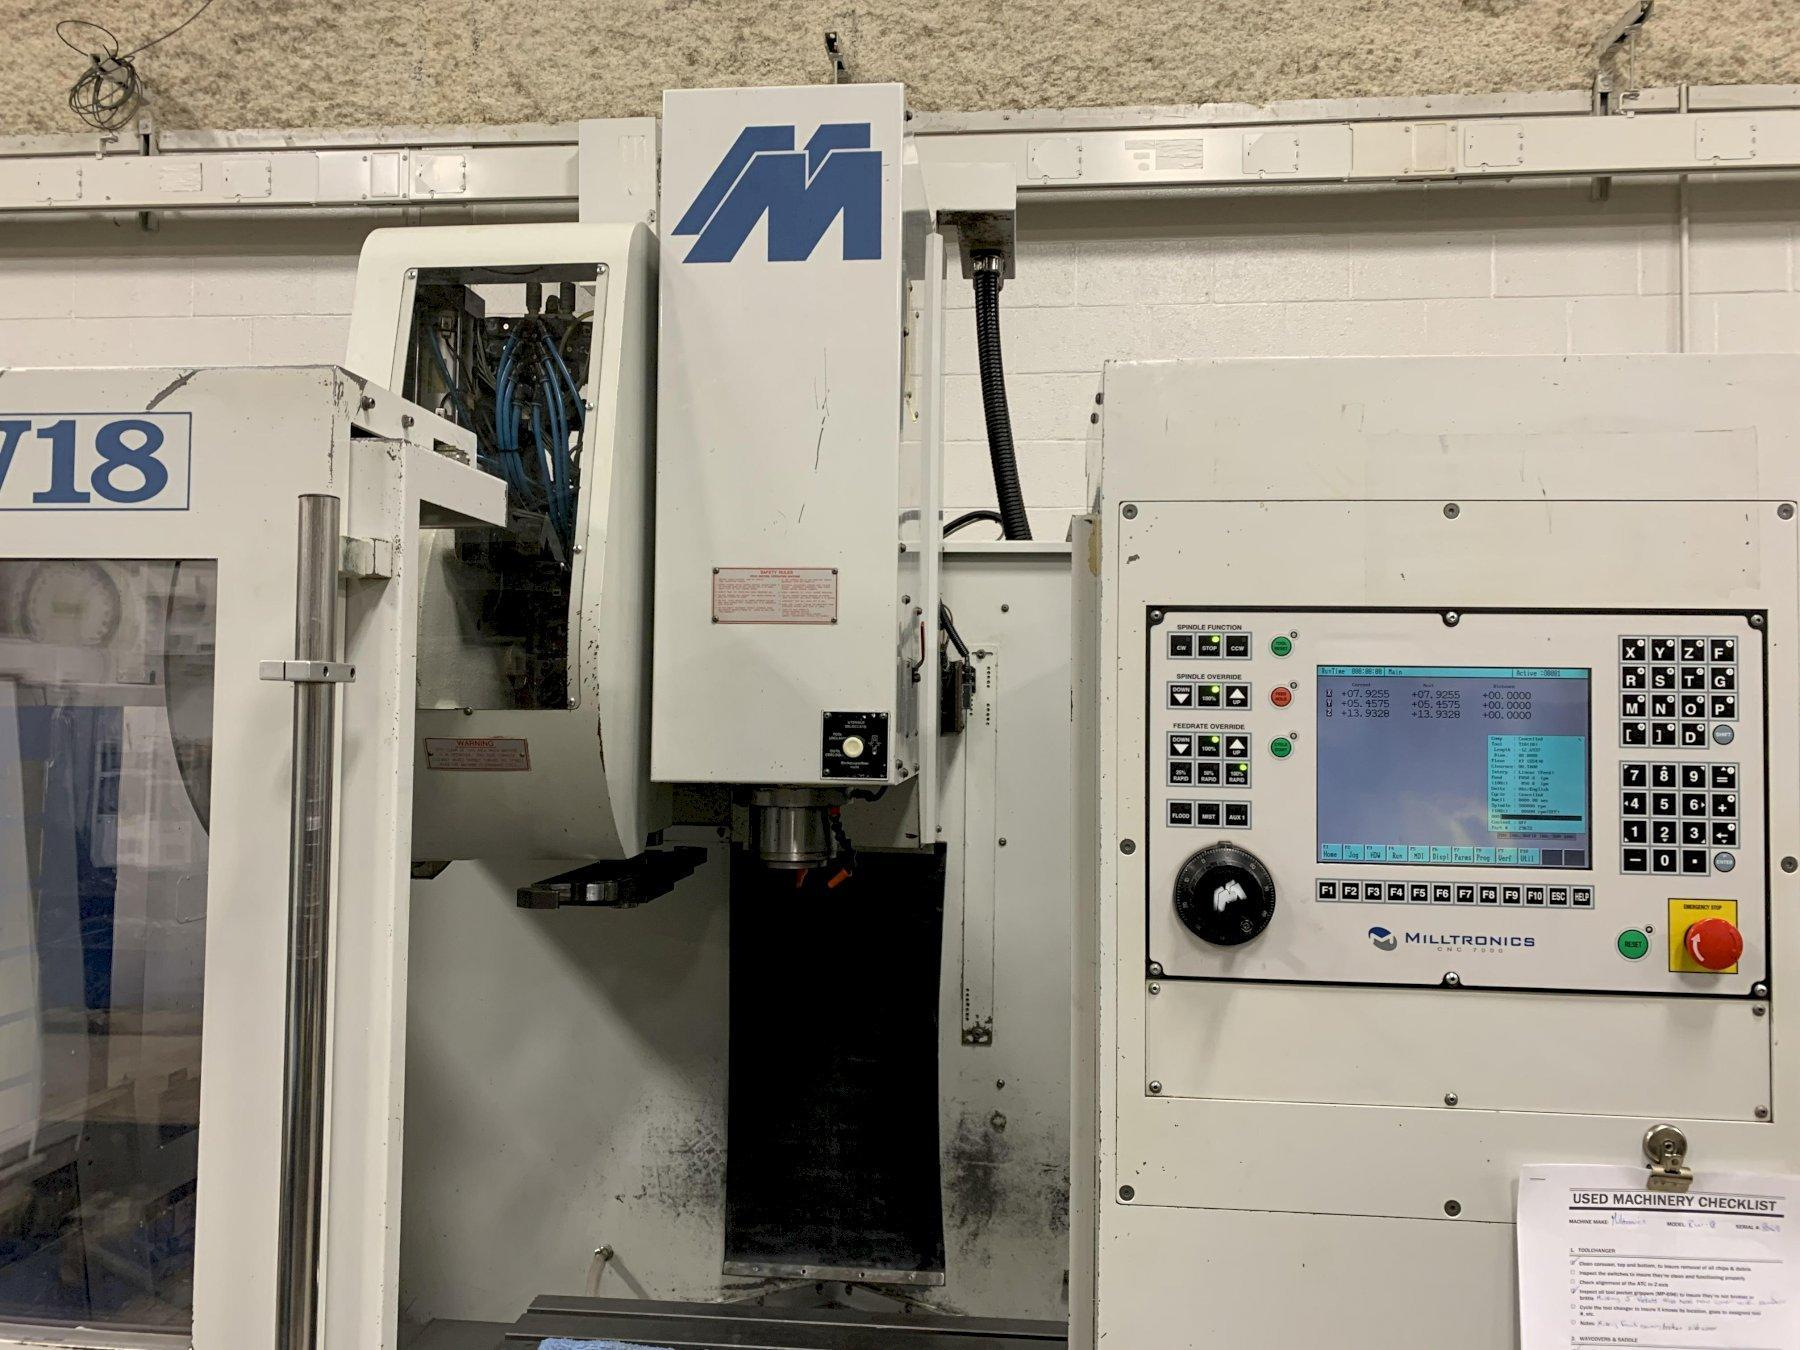 Milltronics RW18 Vertical Machining Center, S/N 8069 - reduced